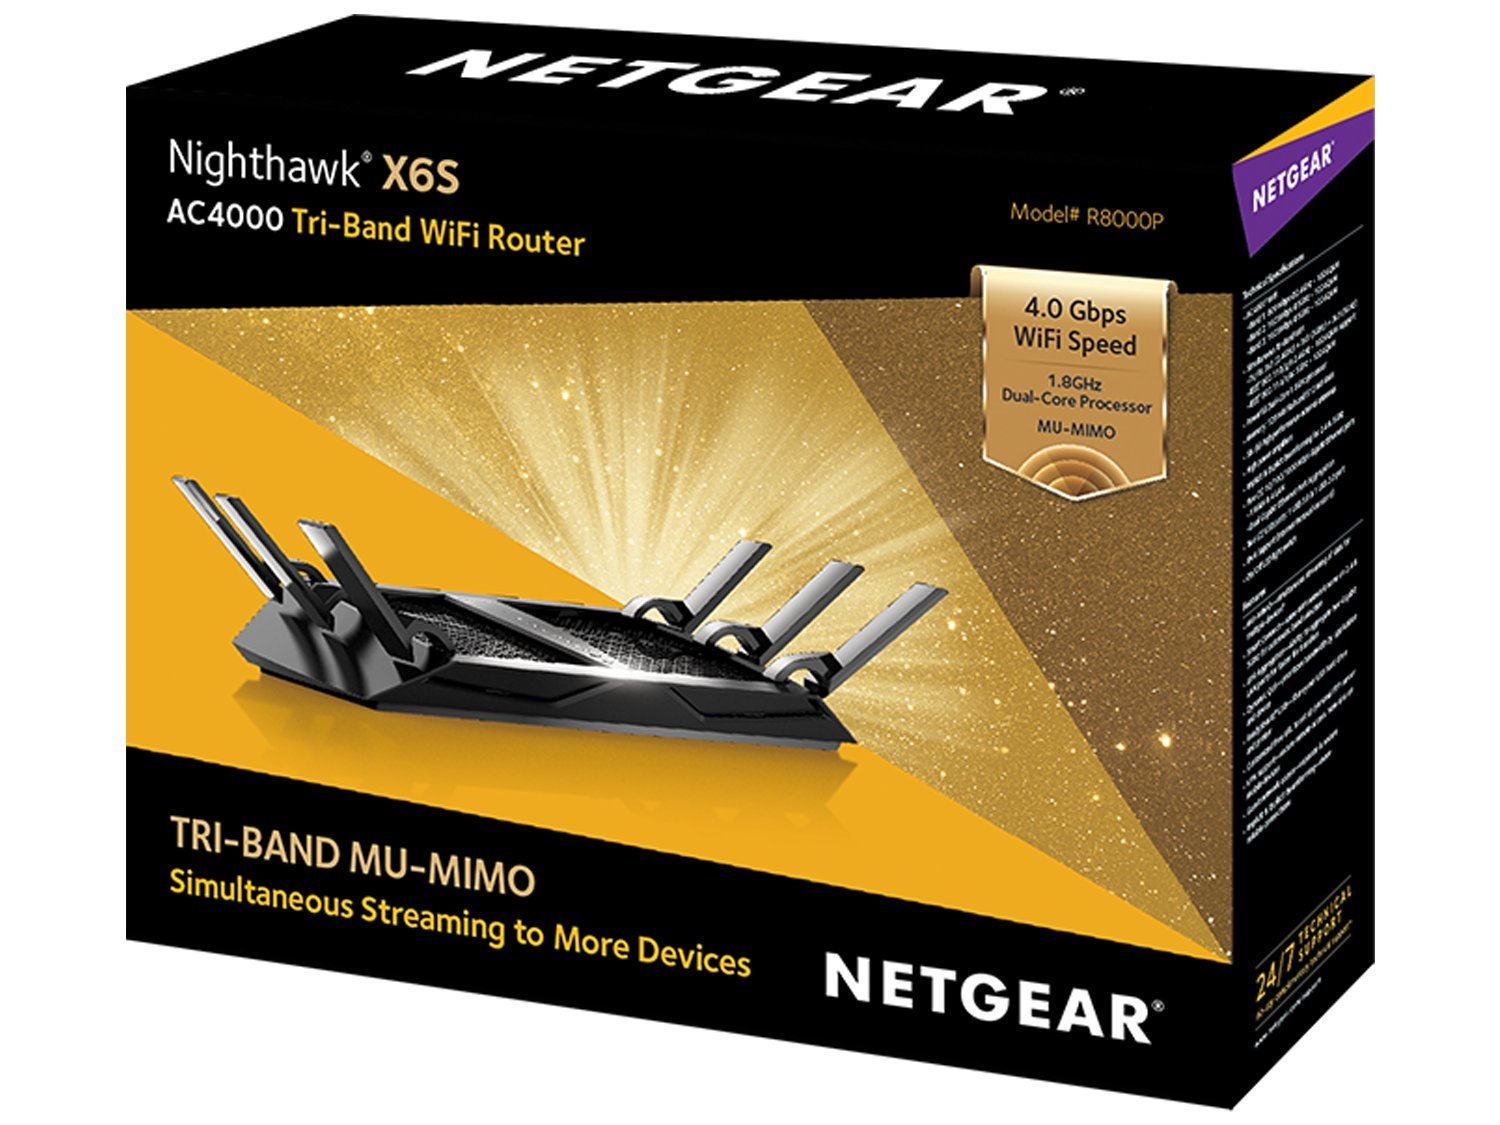 NETGEAR Nighthawk X6S AC4000 Tri-band WiFi Router, Gigabit Ethernet, MU-MIMO, Compatible with Amazon Echo/Alexa (R8000P) 7 AC4000 WIFI-Up to 750+1625+1625 Mbps wireless speed TRI-BAND WIFI - Avoids interference & optimizes network performance MULTI-USER MIMO (MU-MIMO)-For simultaneous streaming to multiple devices